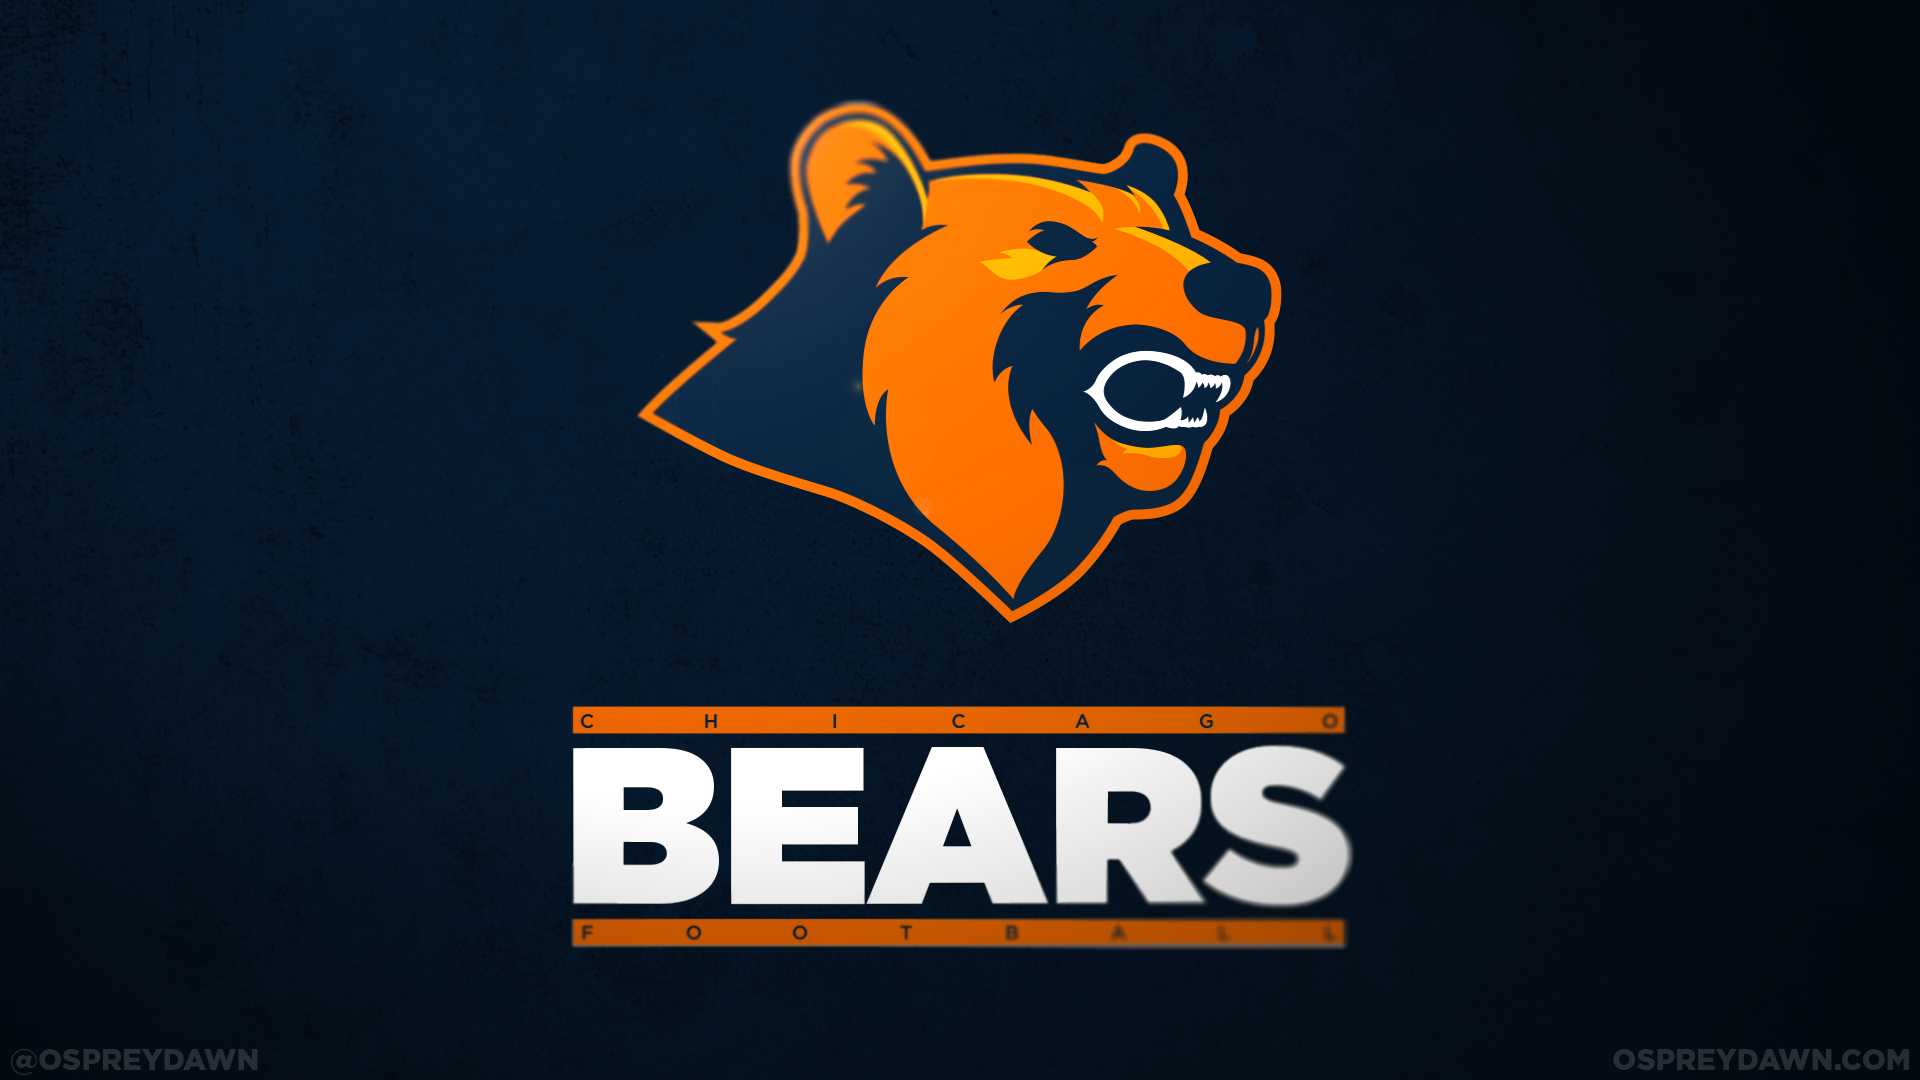 The Chicago Bears